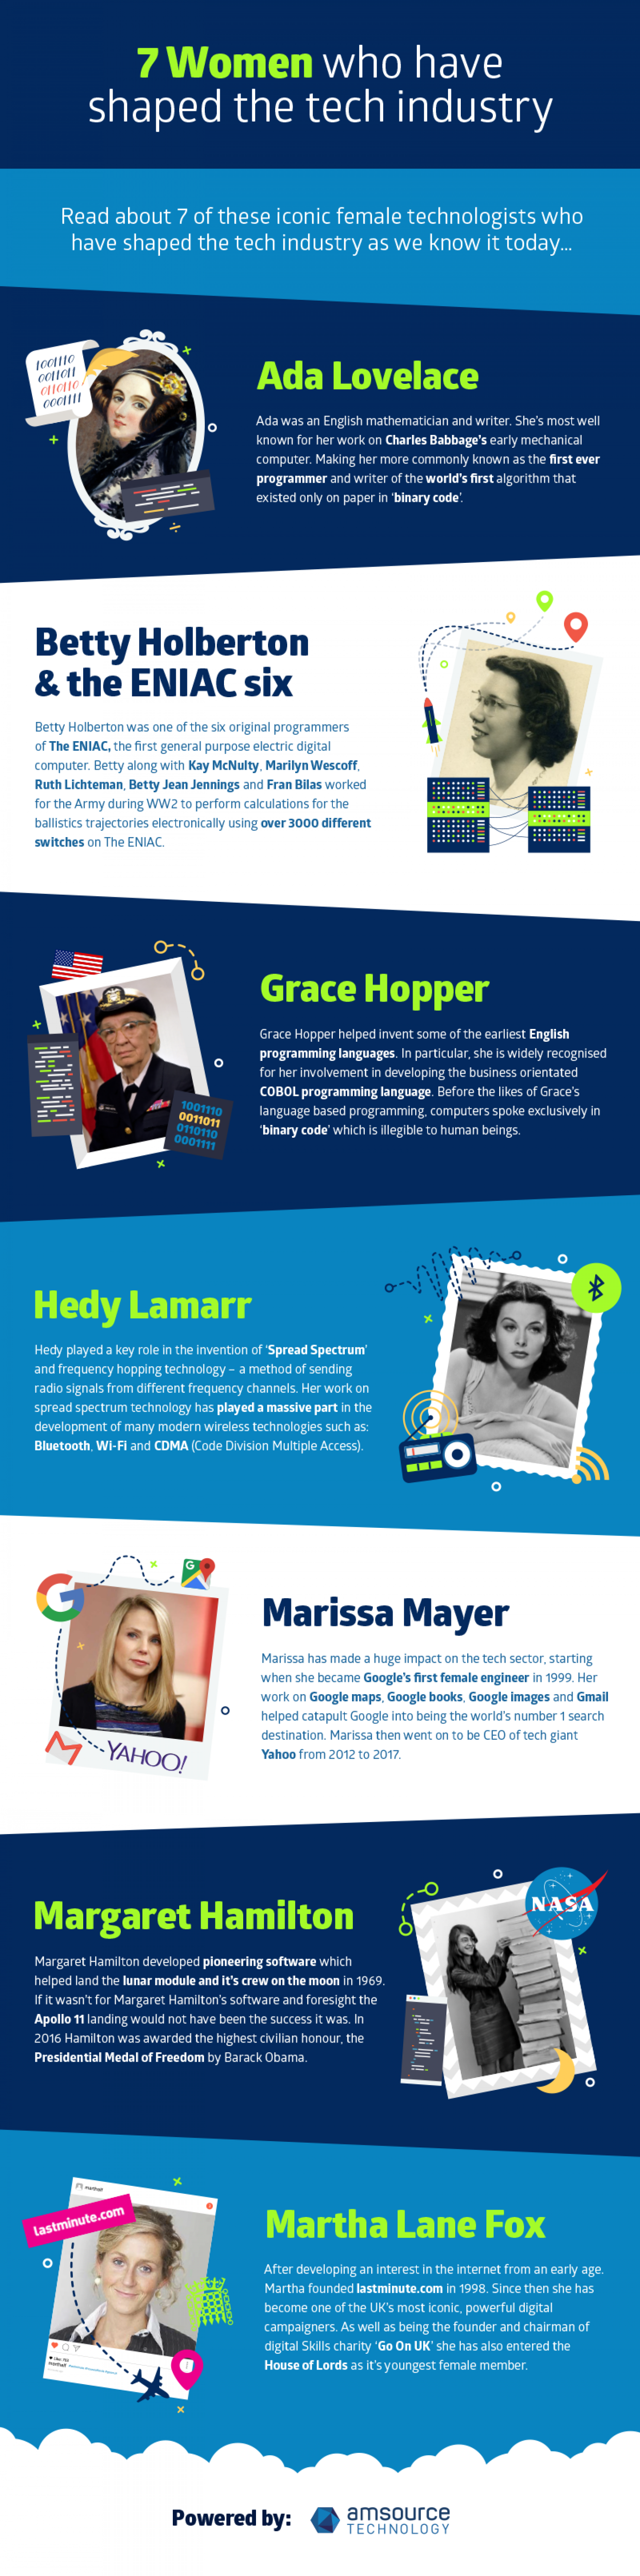 7 Women Who Have Shaped The Technology Industry Infographic